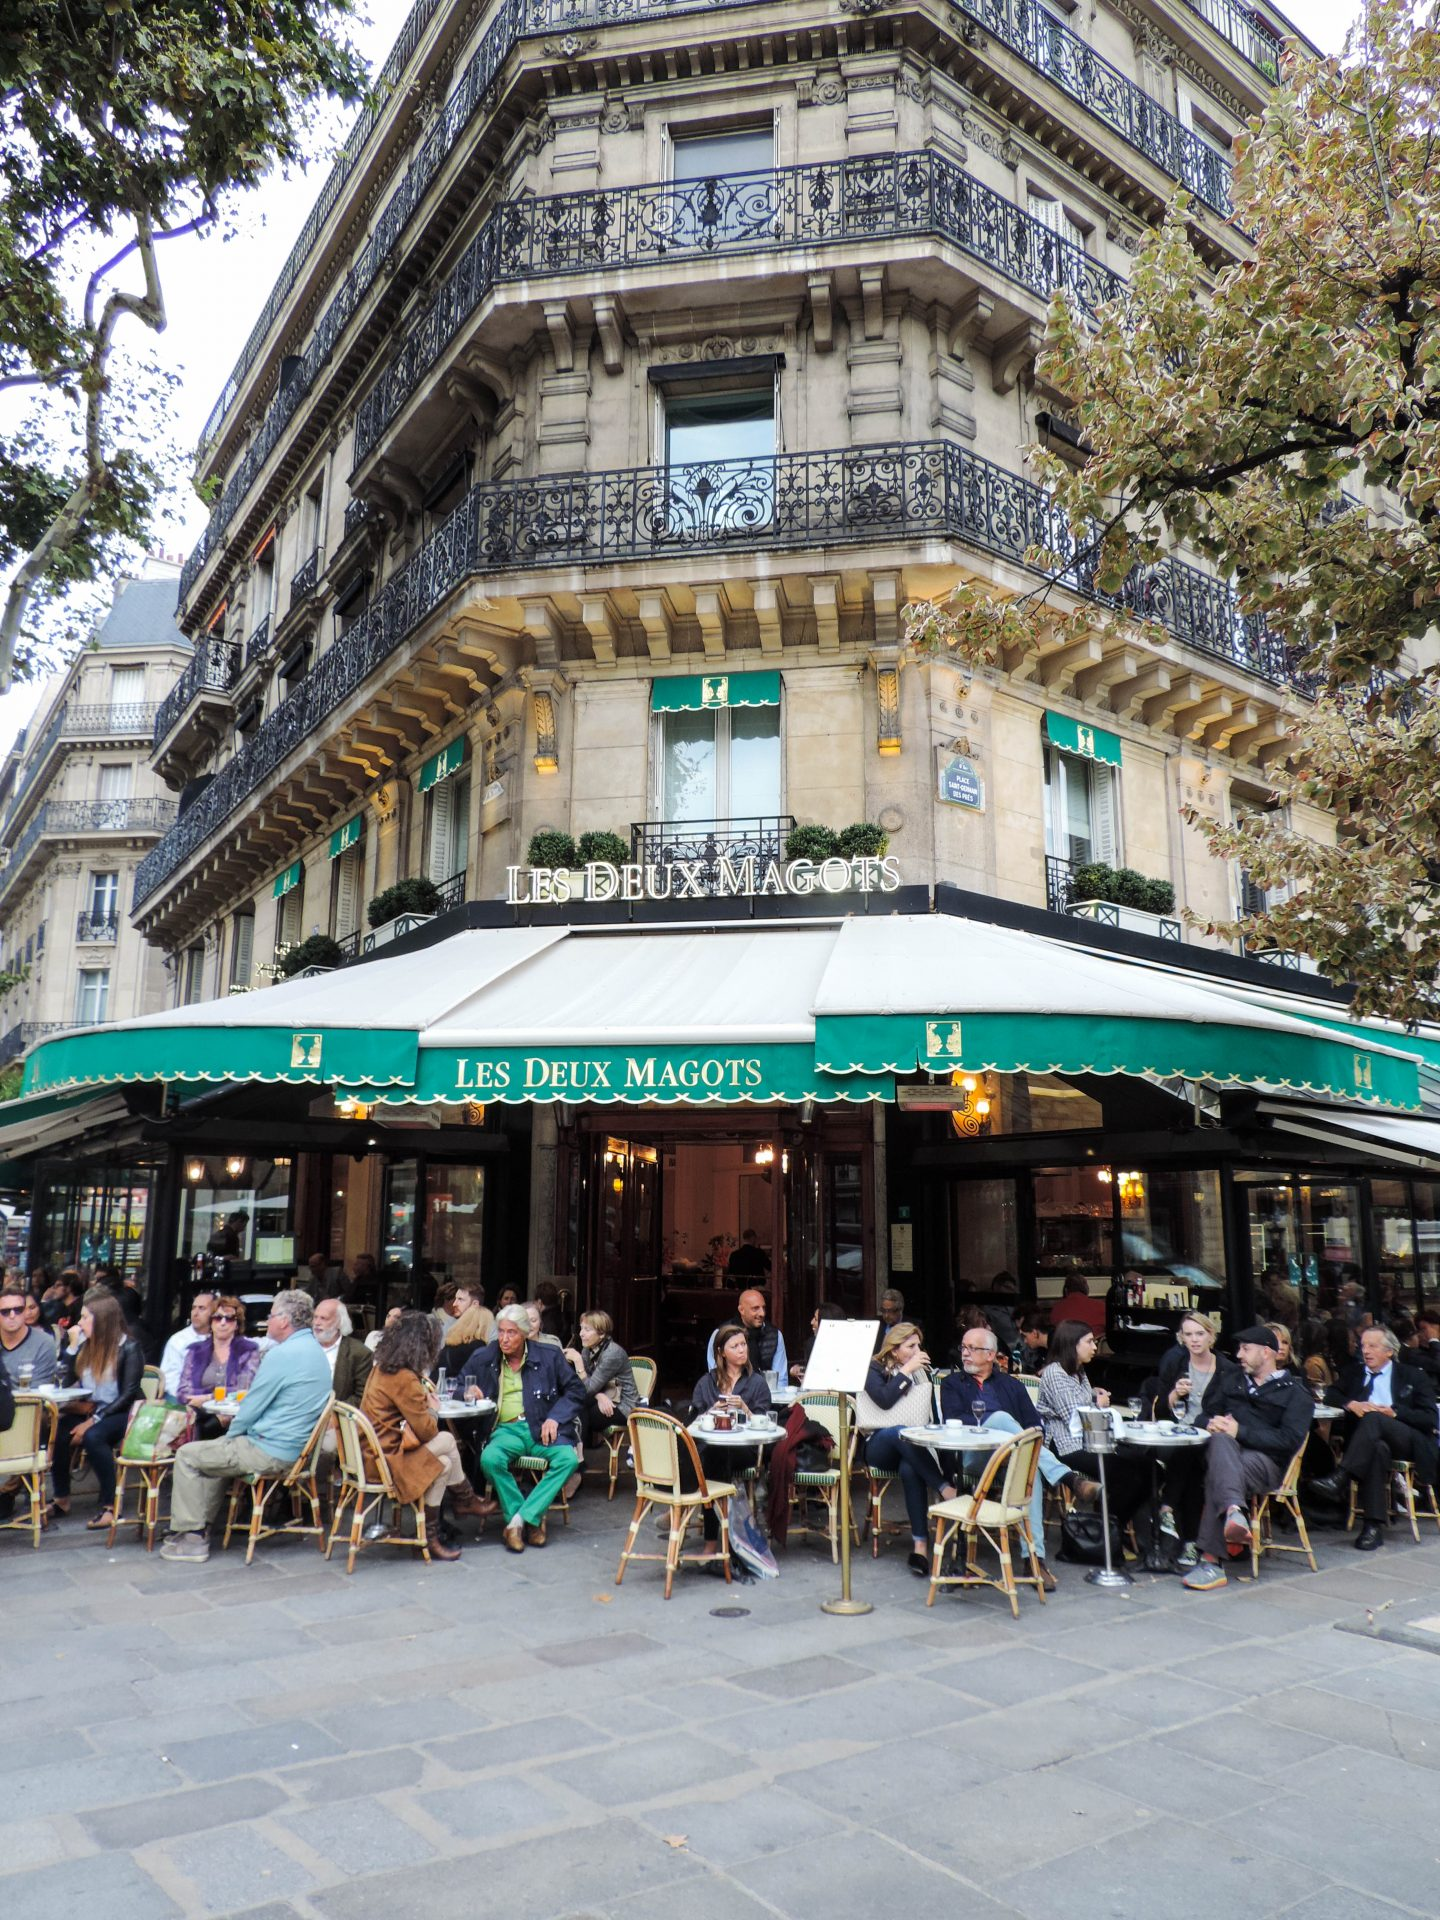 Postcards From Paris: Eating and Drinking In Paris' Sixth Arrondissement